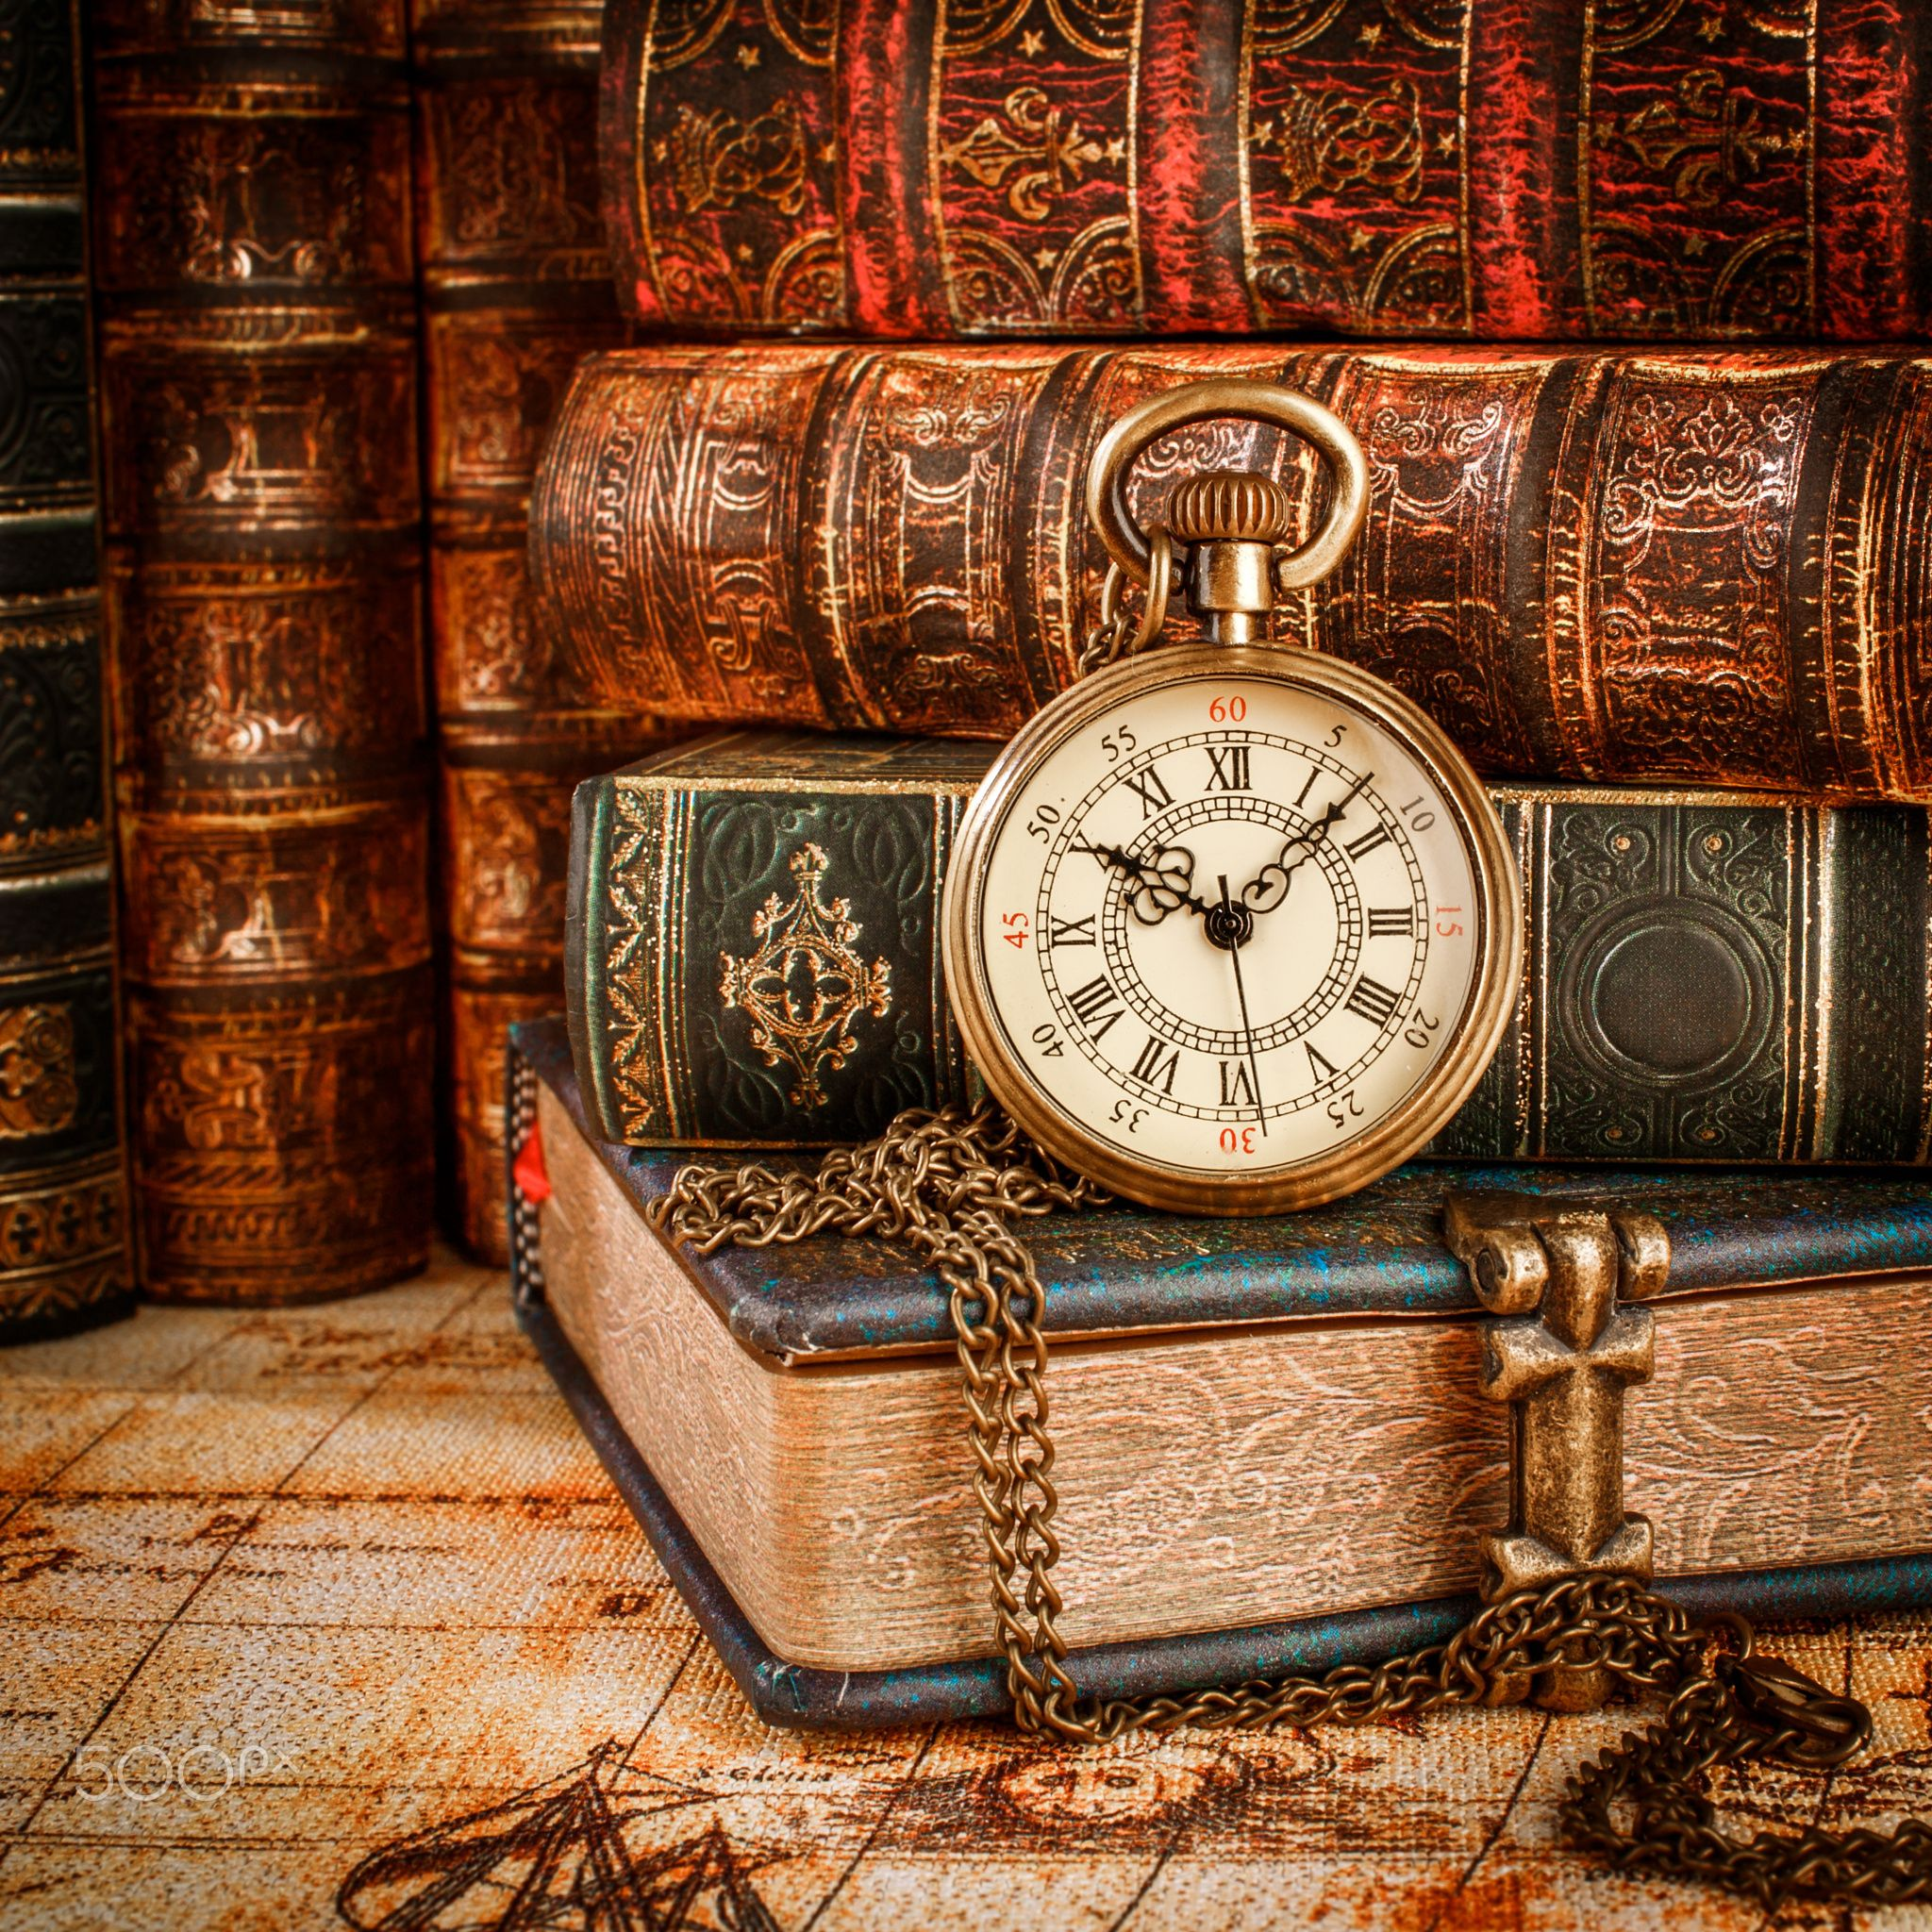 Old Books and Vintage pocket watch - Vintage Antique pocket watch on ...